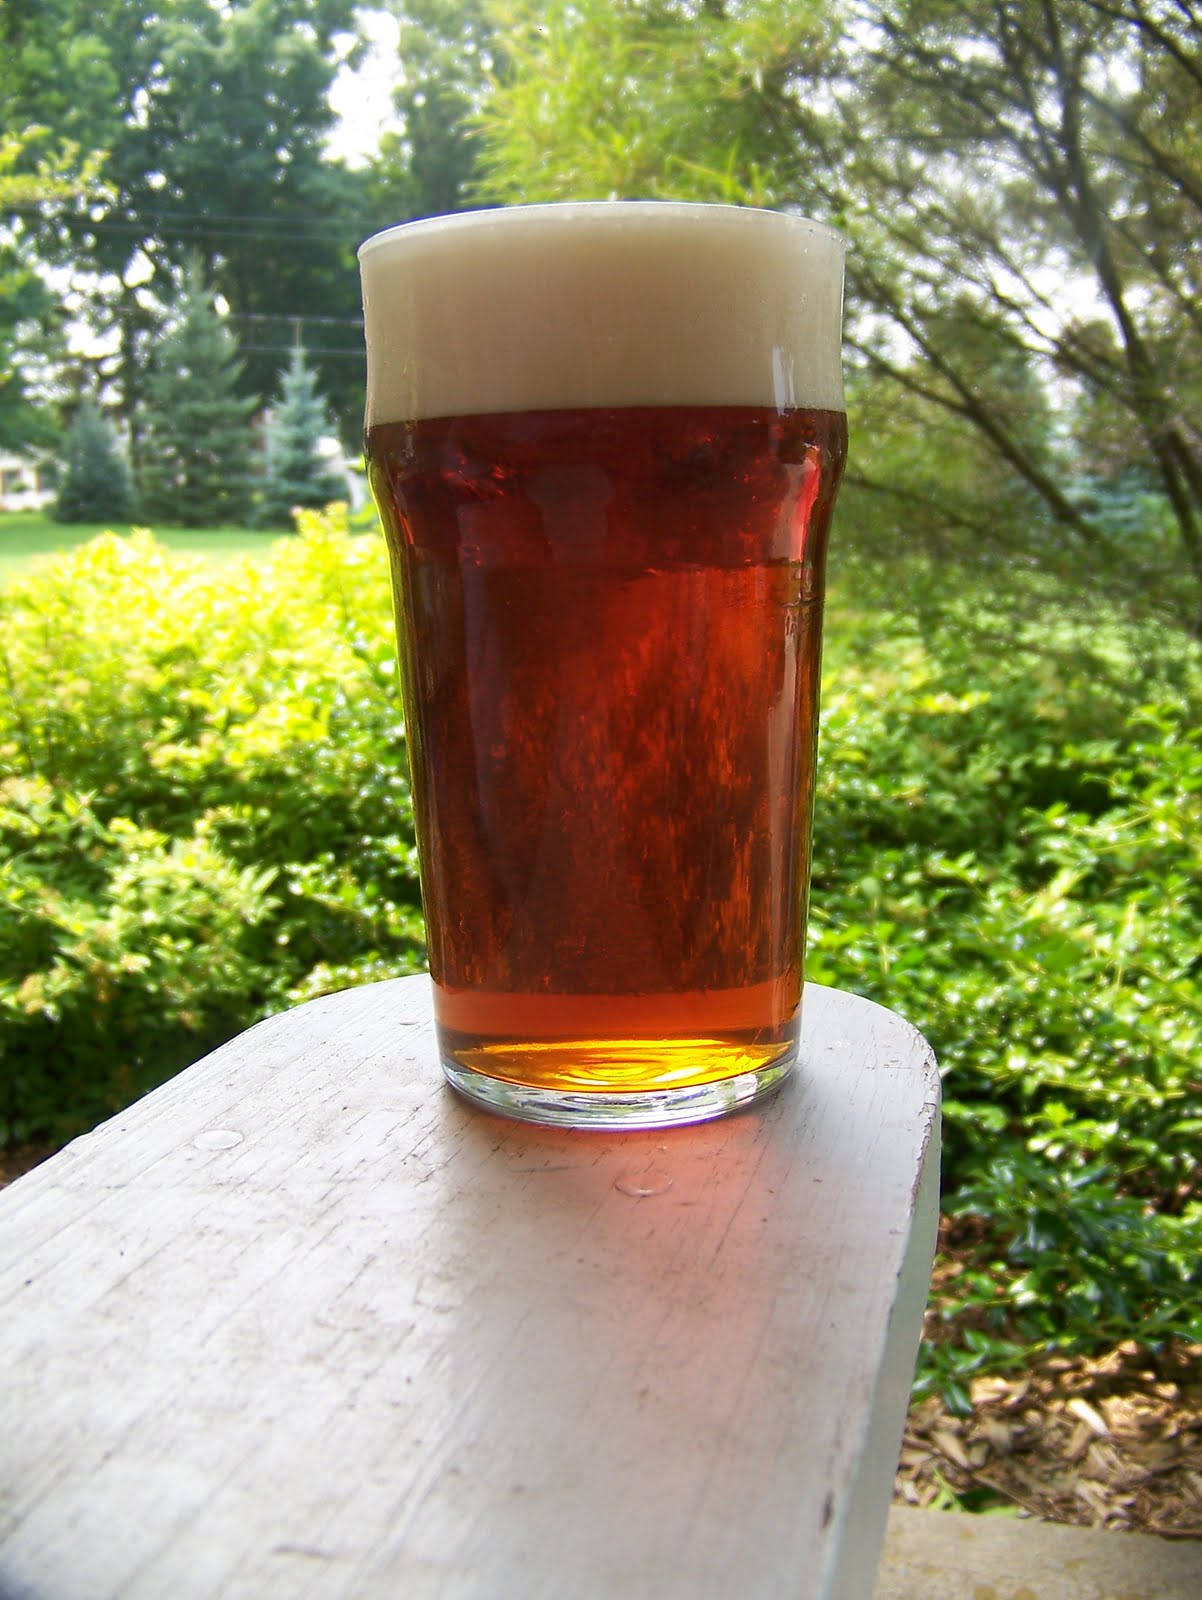 Session Amber : American Amber Ale